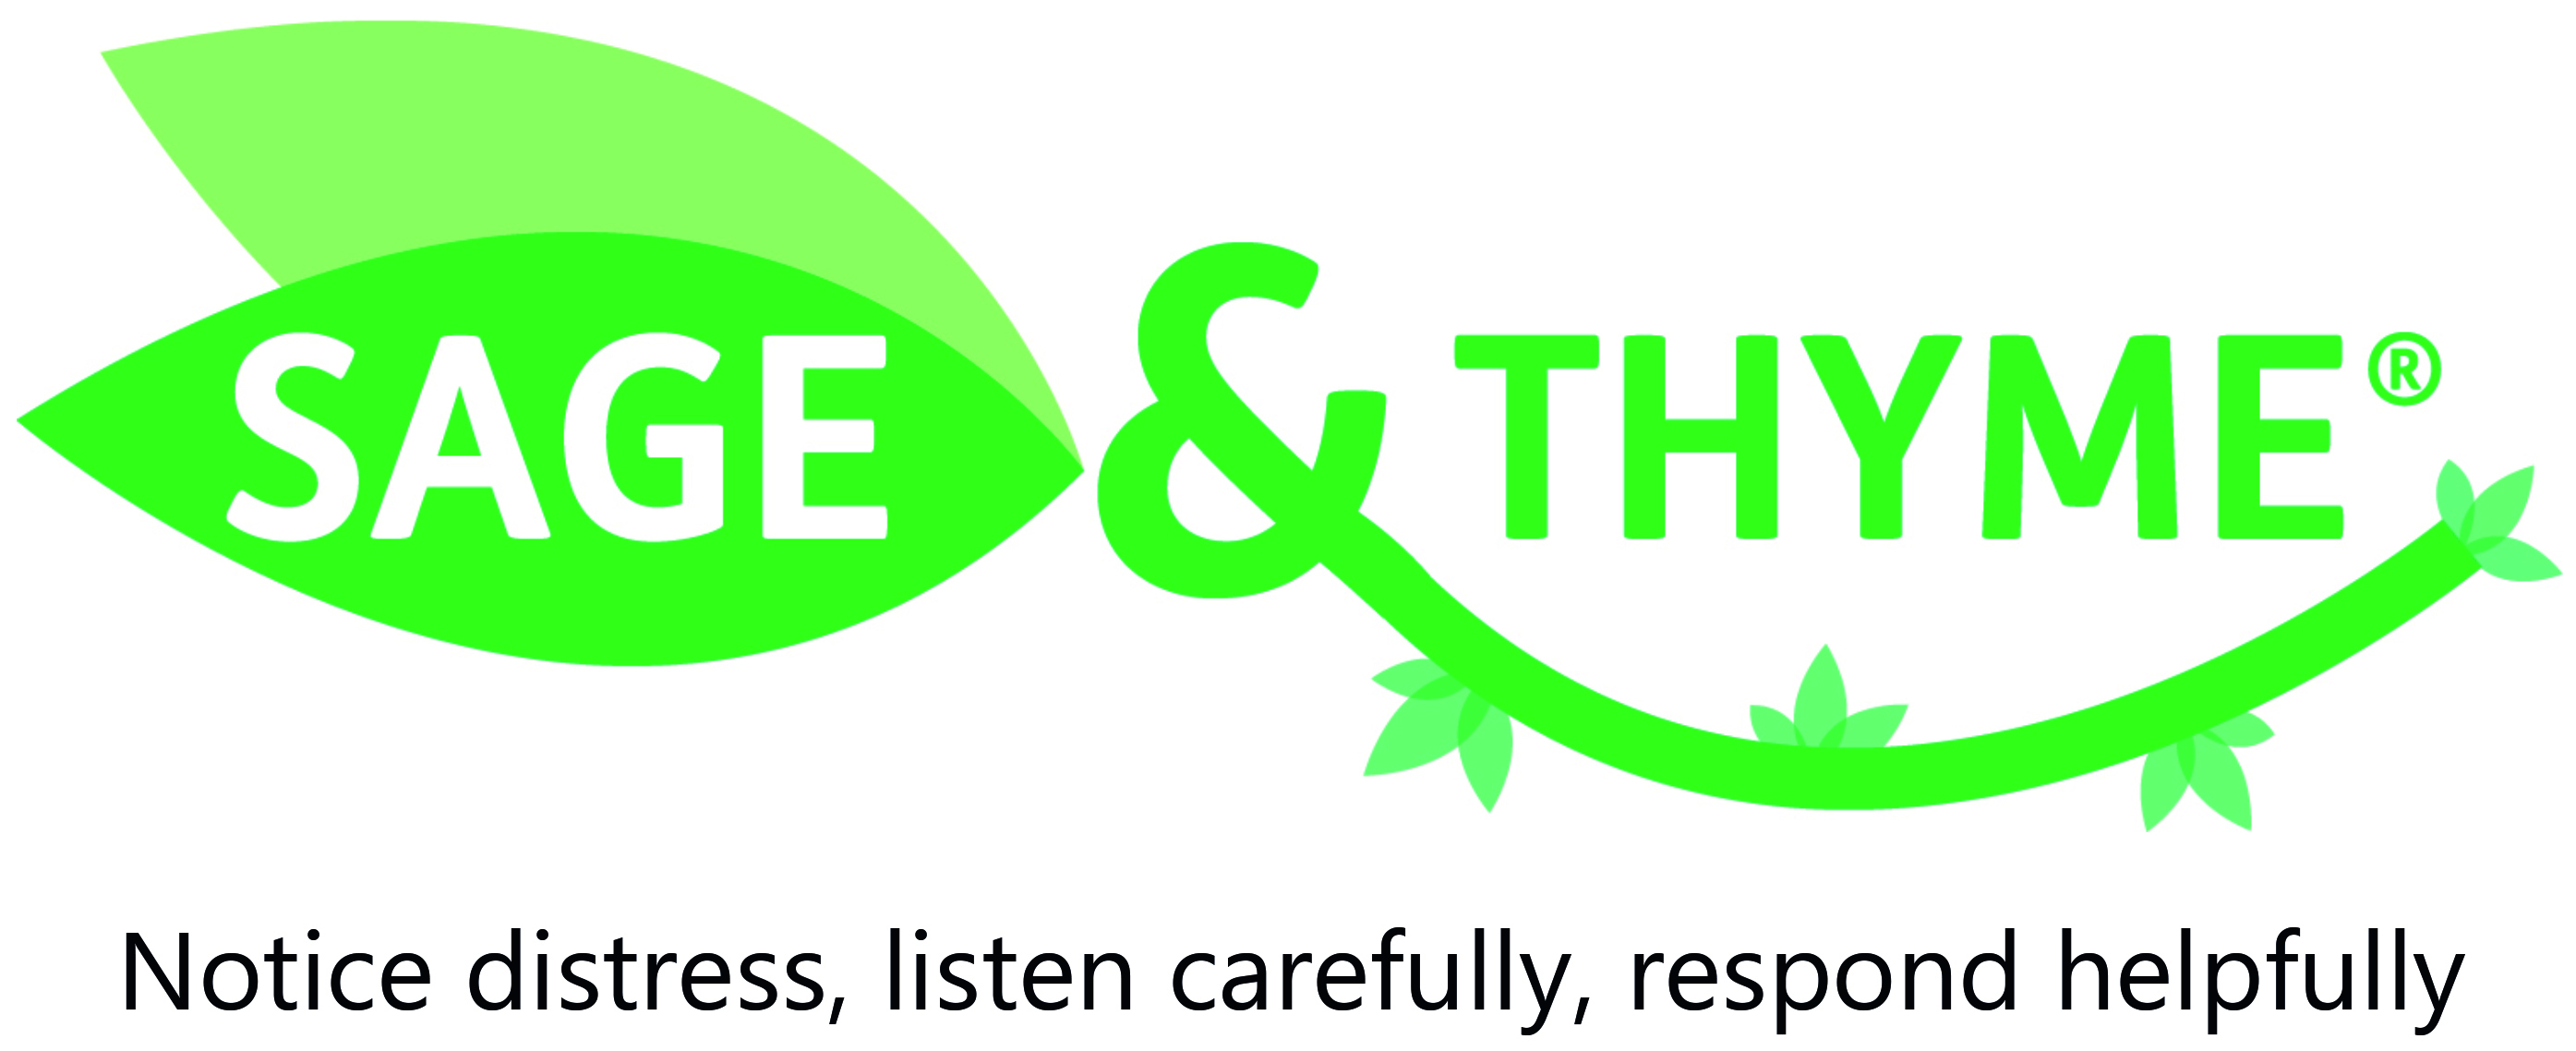 SAGE & THYME model and benefits | SAGE & THYME